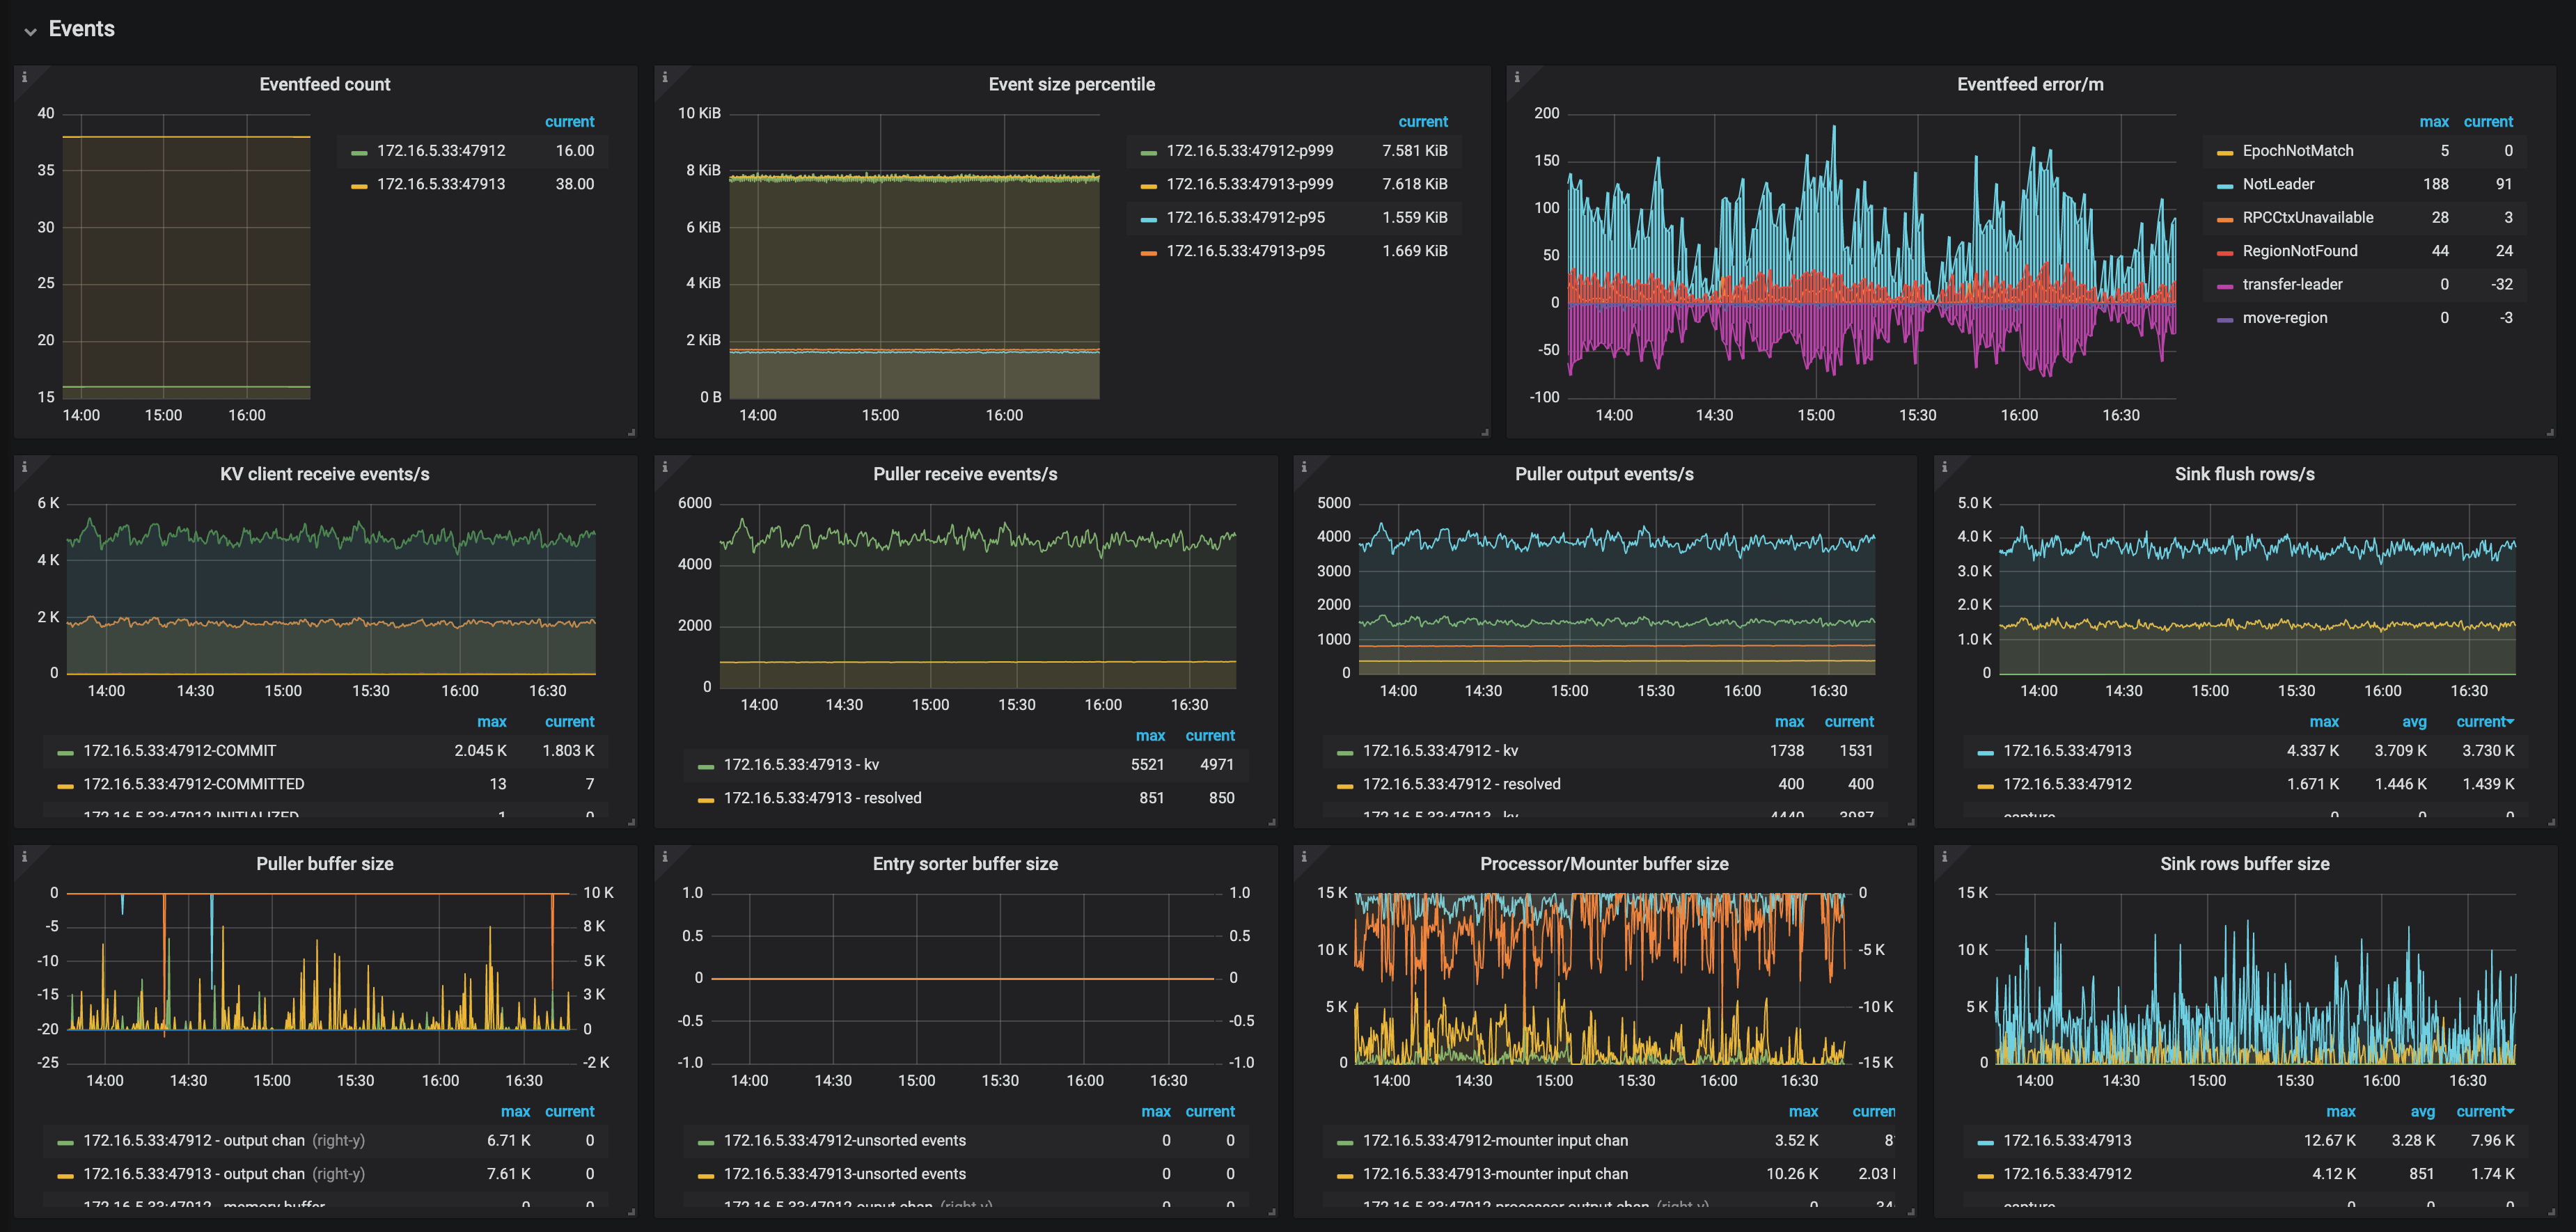 TiCDC Dashboard - Events metrics 2